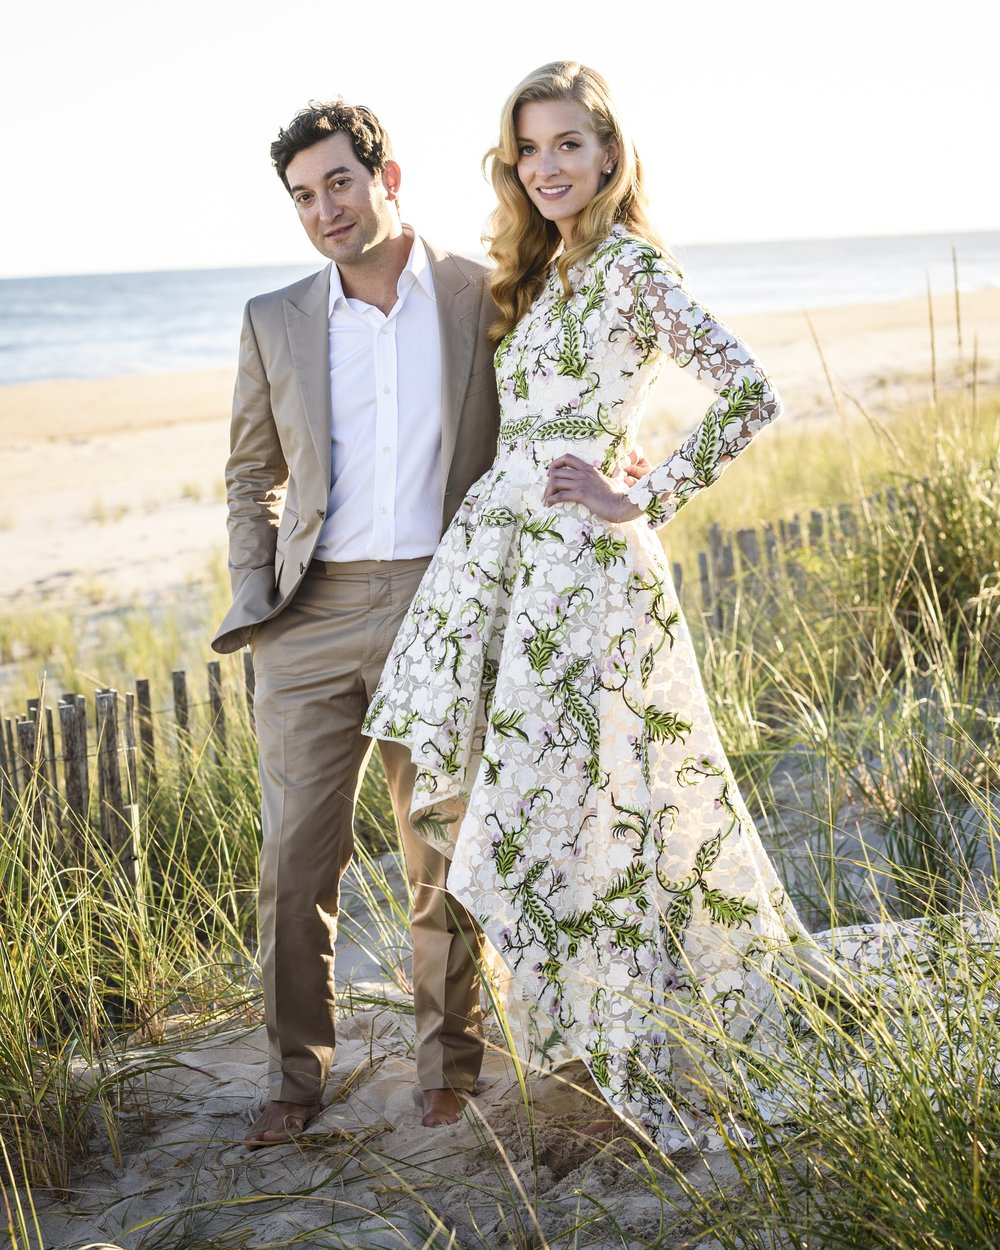 Talia & Jon    PRIVATE ESTATE    HAMPTONS      image by Hannah Thompson    SEE MORE >